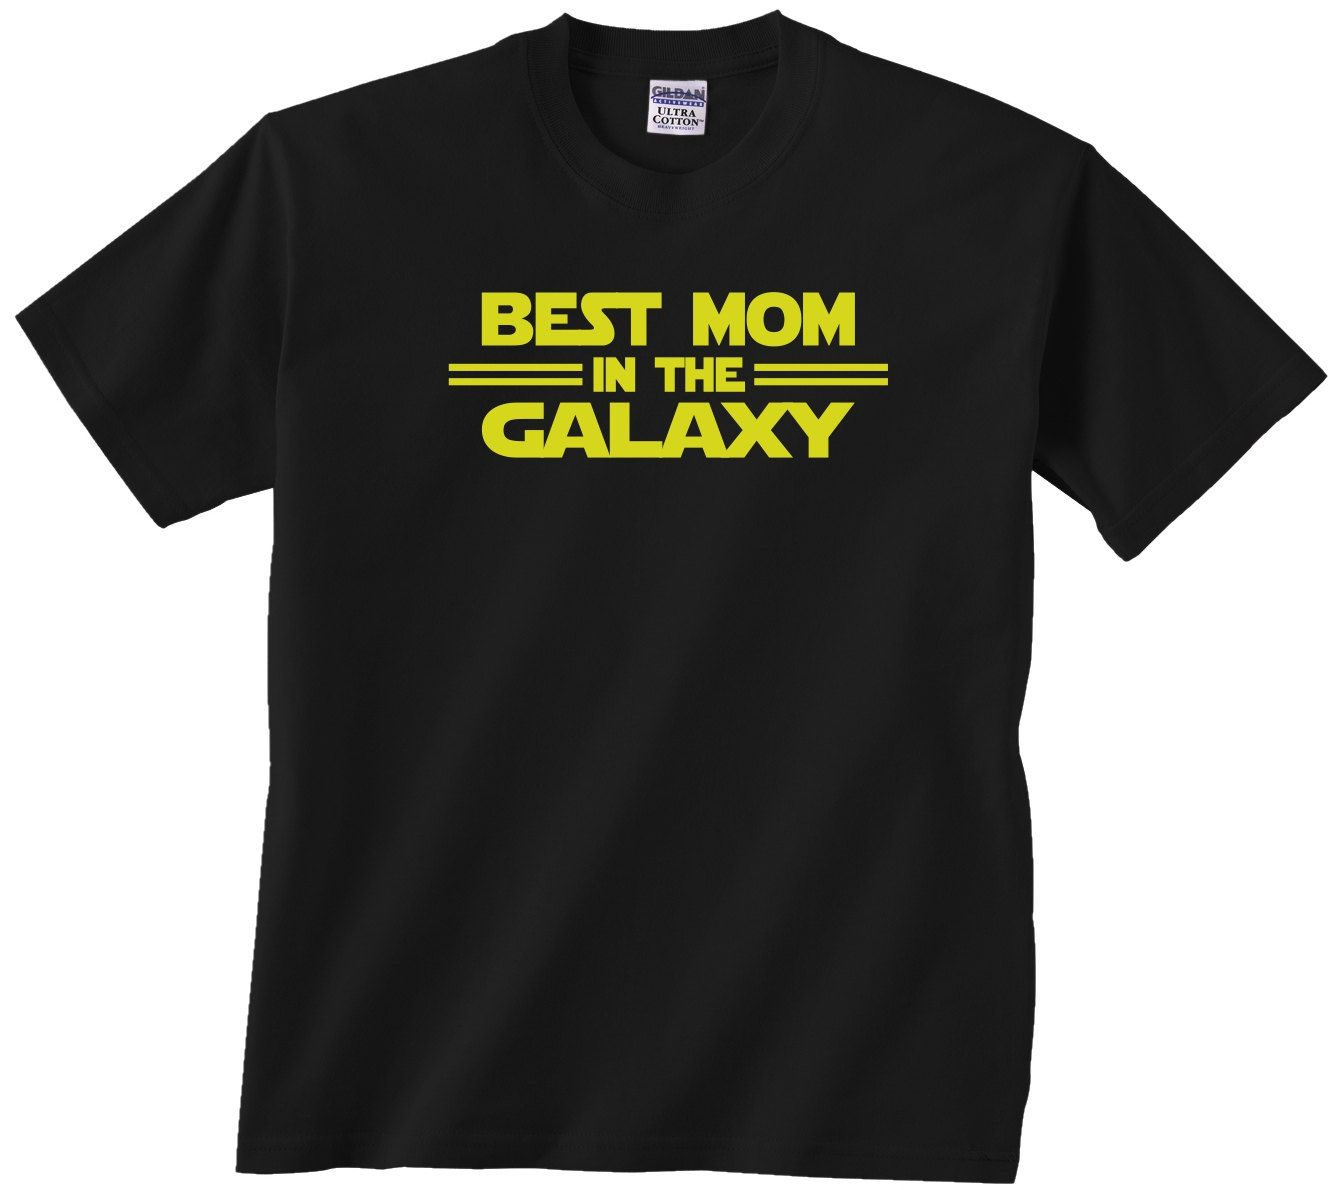 Best Mom T Shirt Star Wars Best Mom In The Galaxy